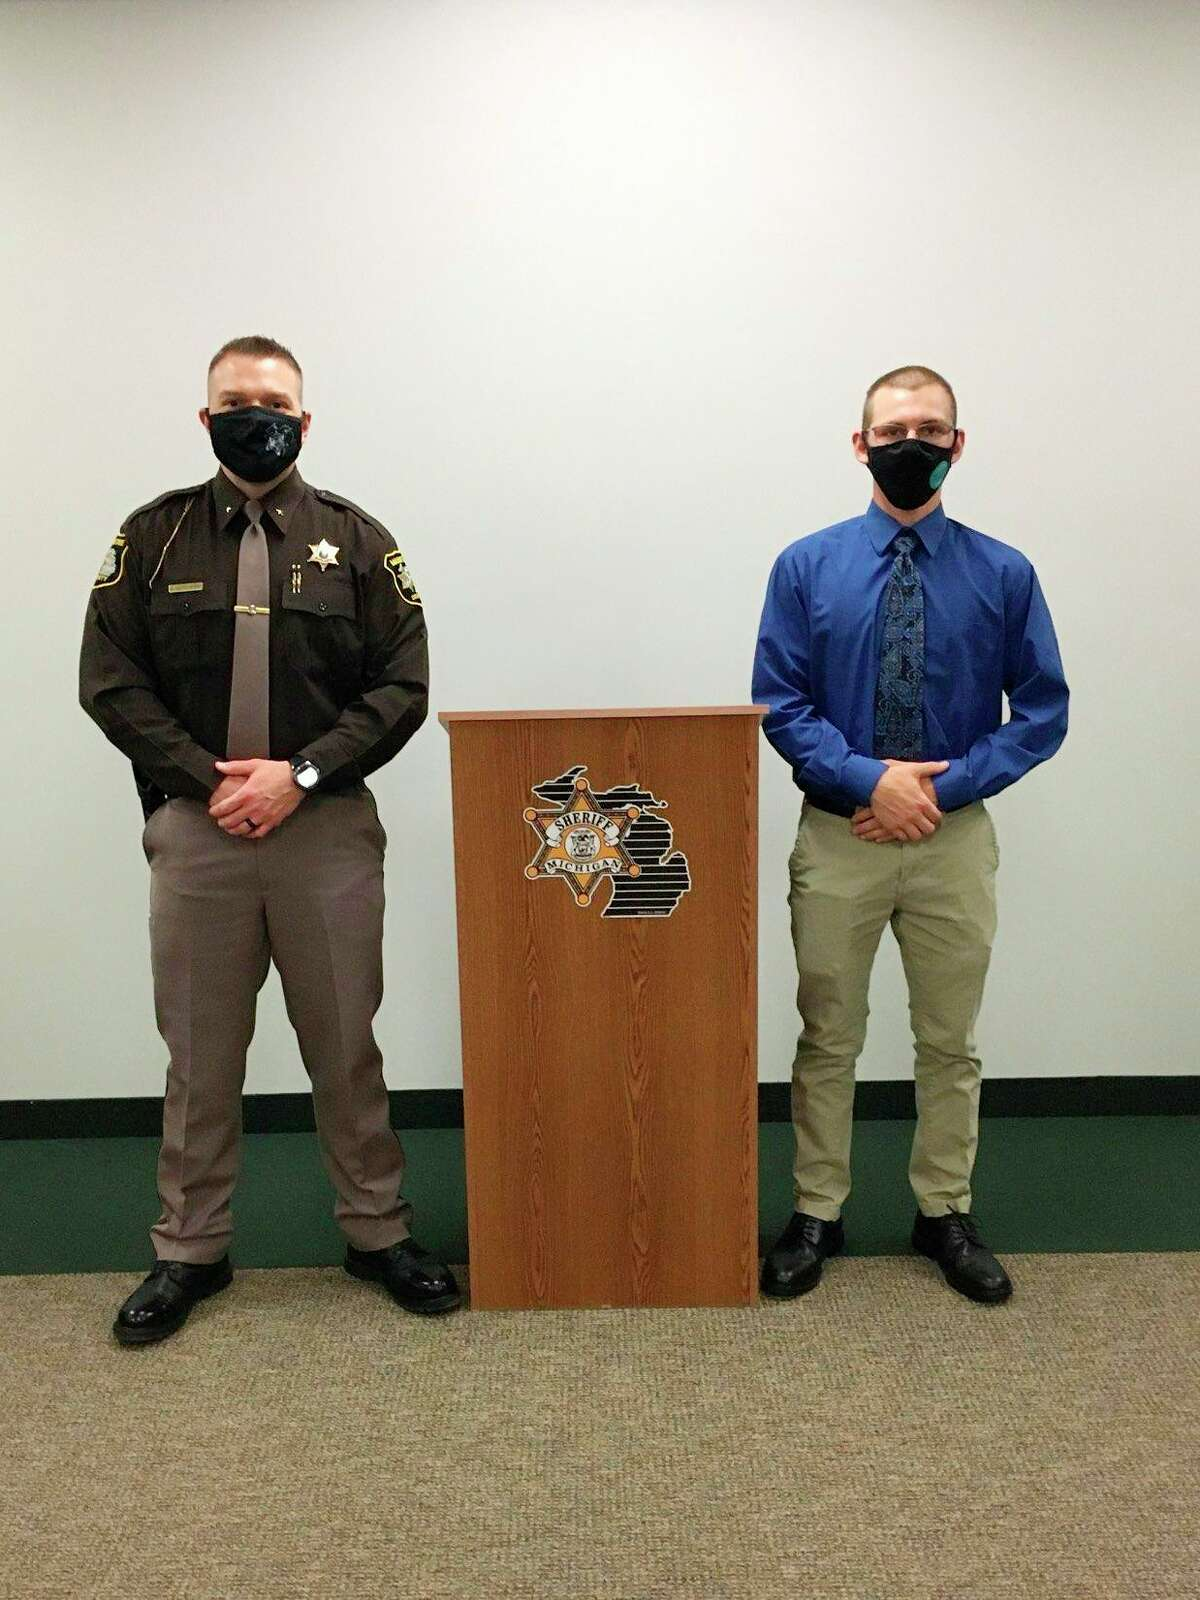 Brendan Cook (right) stands near Manistee County Sheriff Brian Gutowski during an orientation for the Manistee County Sheriff's Office's new apprenticeship program that started this month.(Courtesy photo)